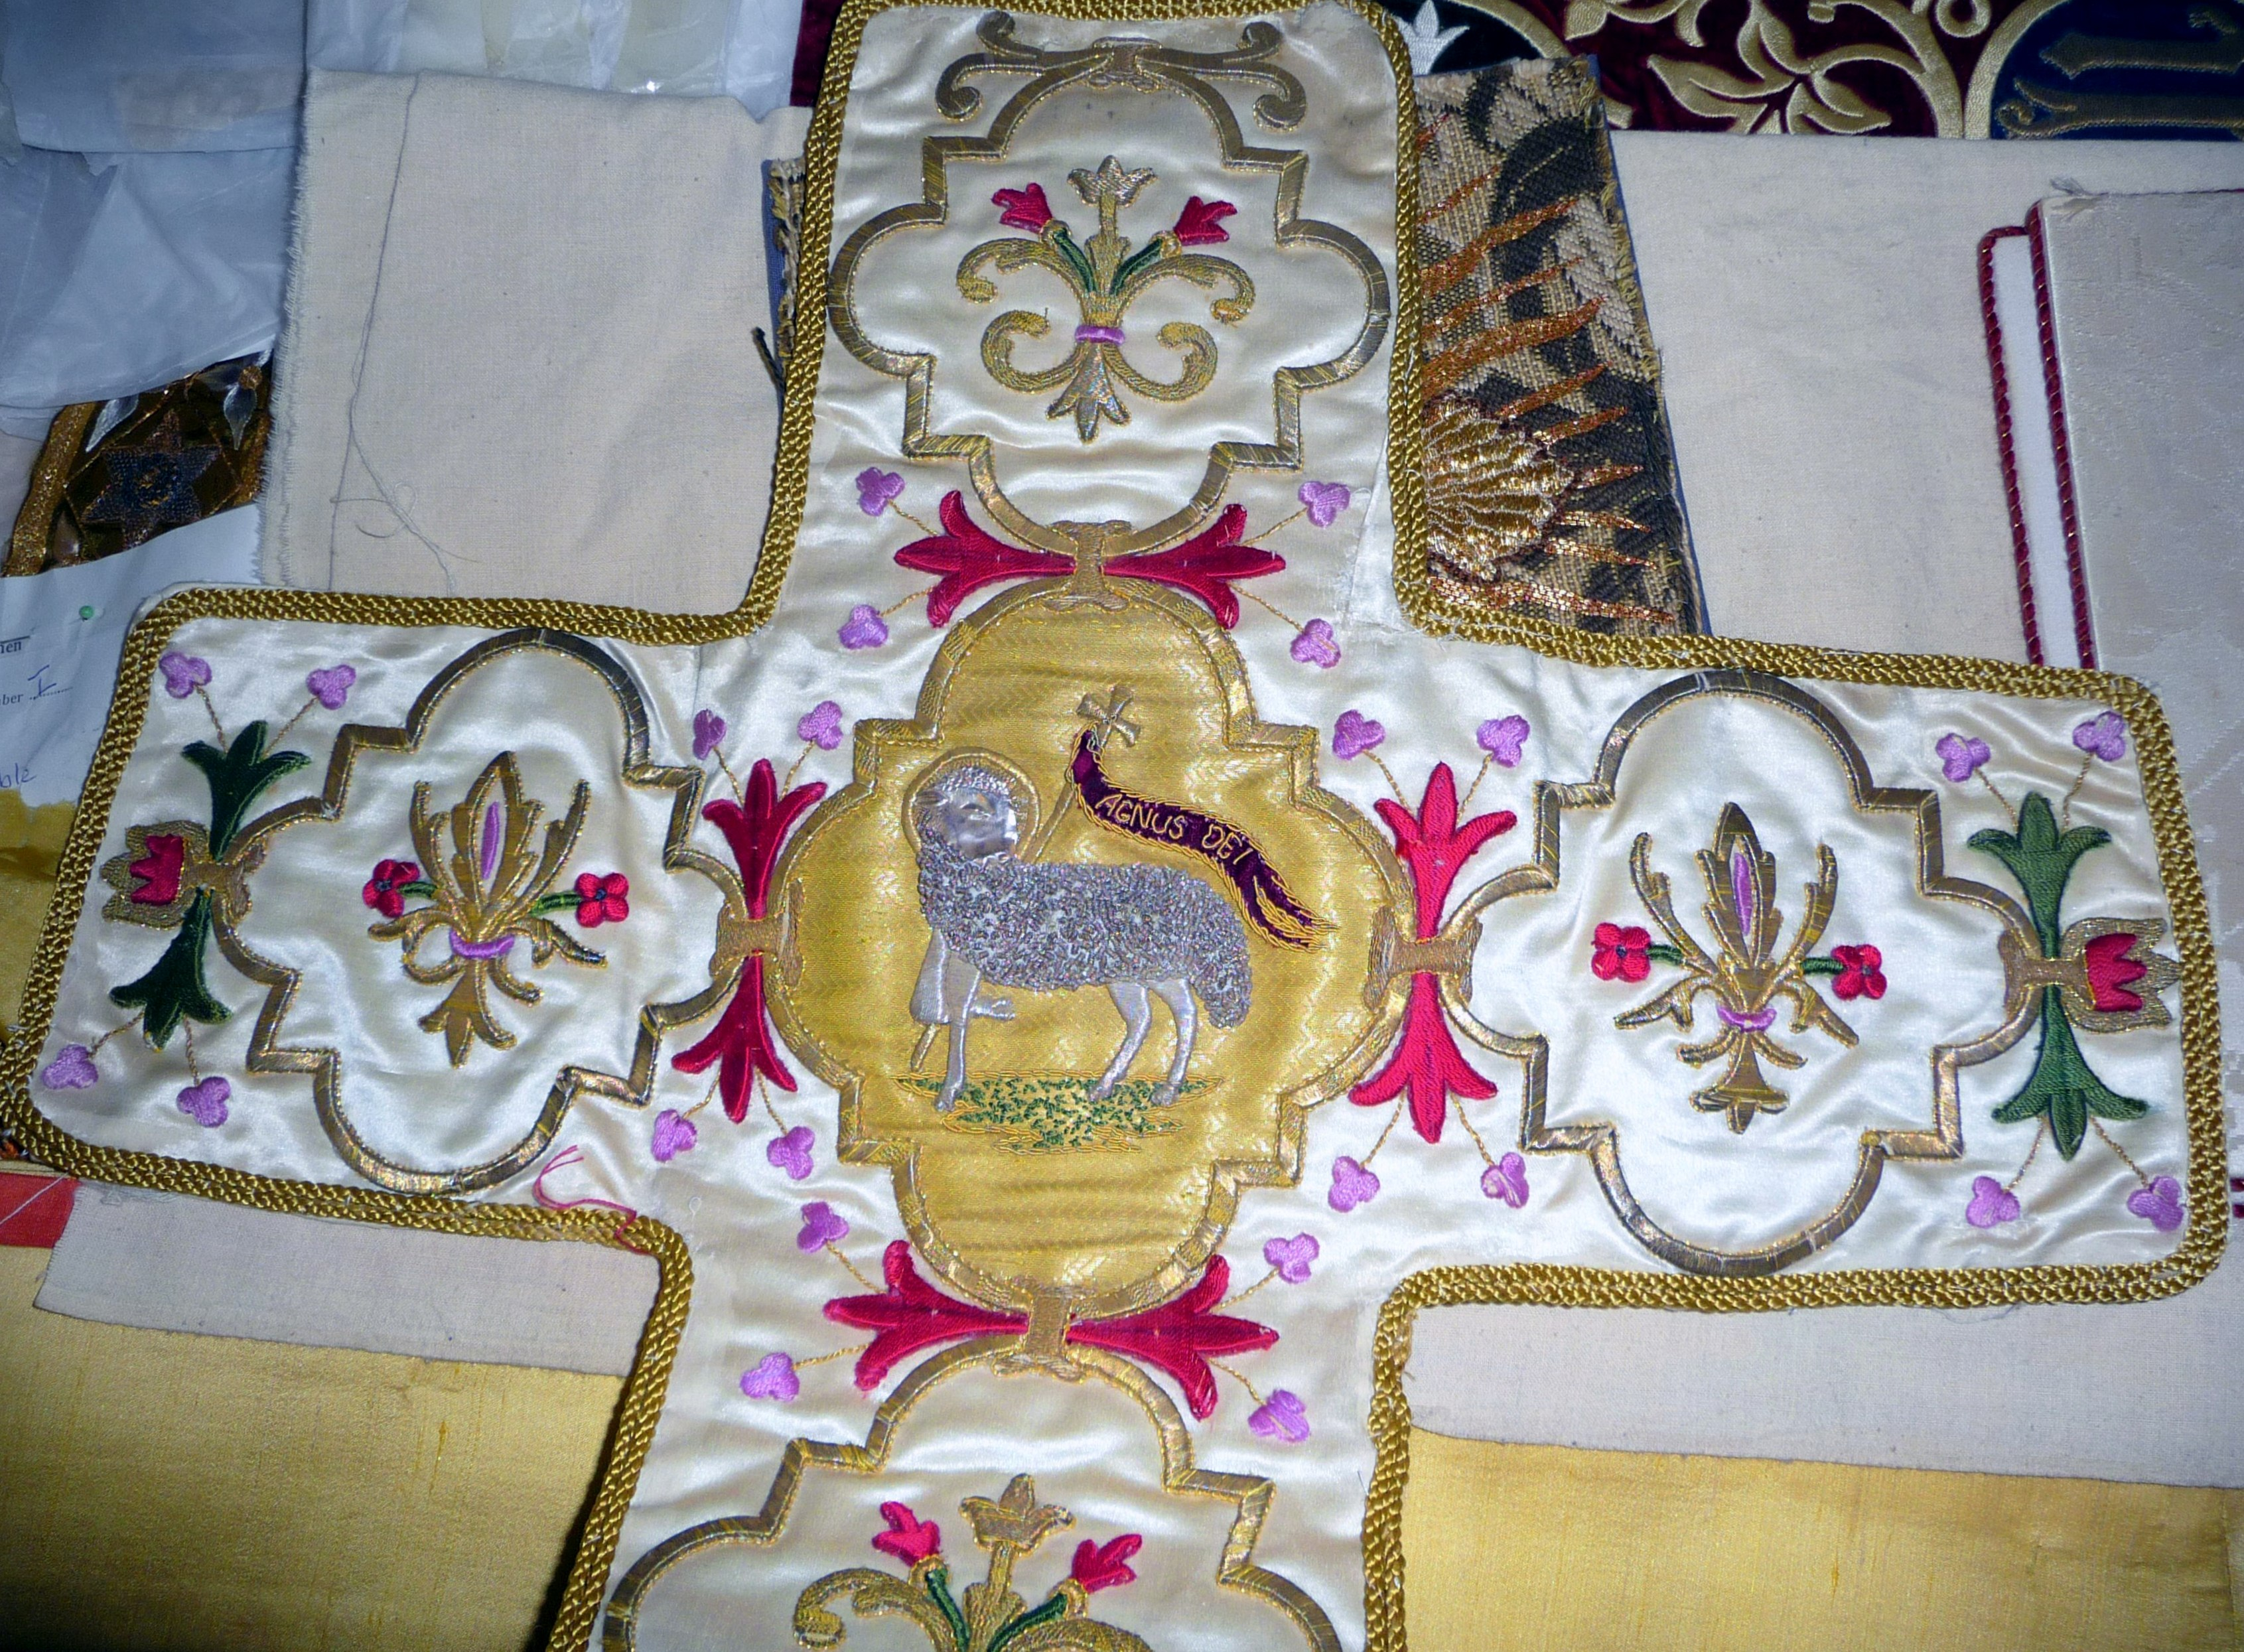 embroidery on display in Elizabeth Hoare Gallery, Liverpool Cathedral